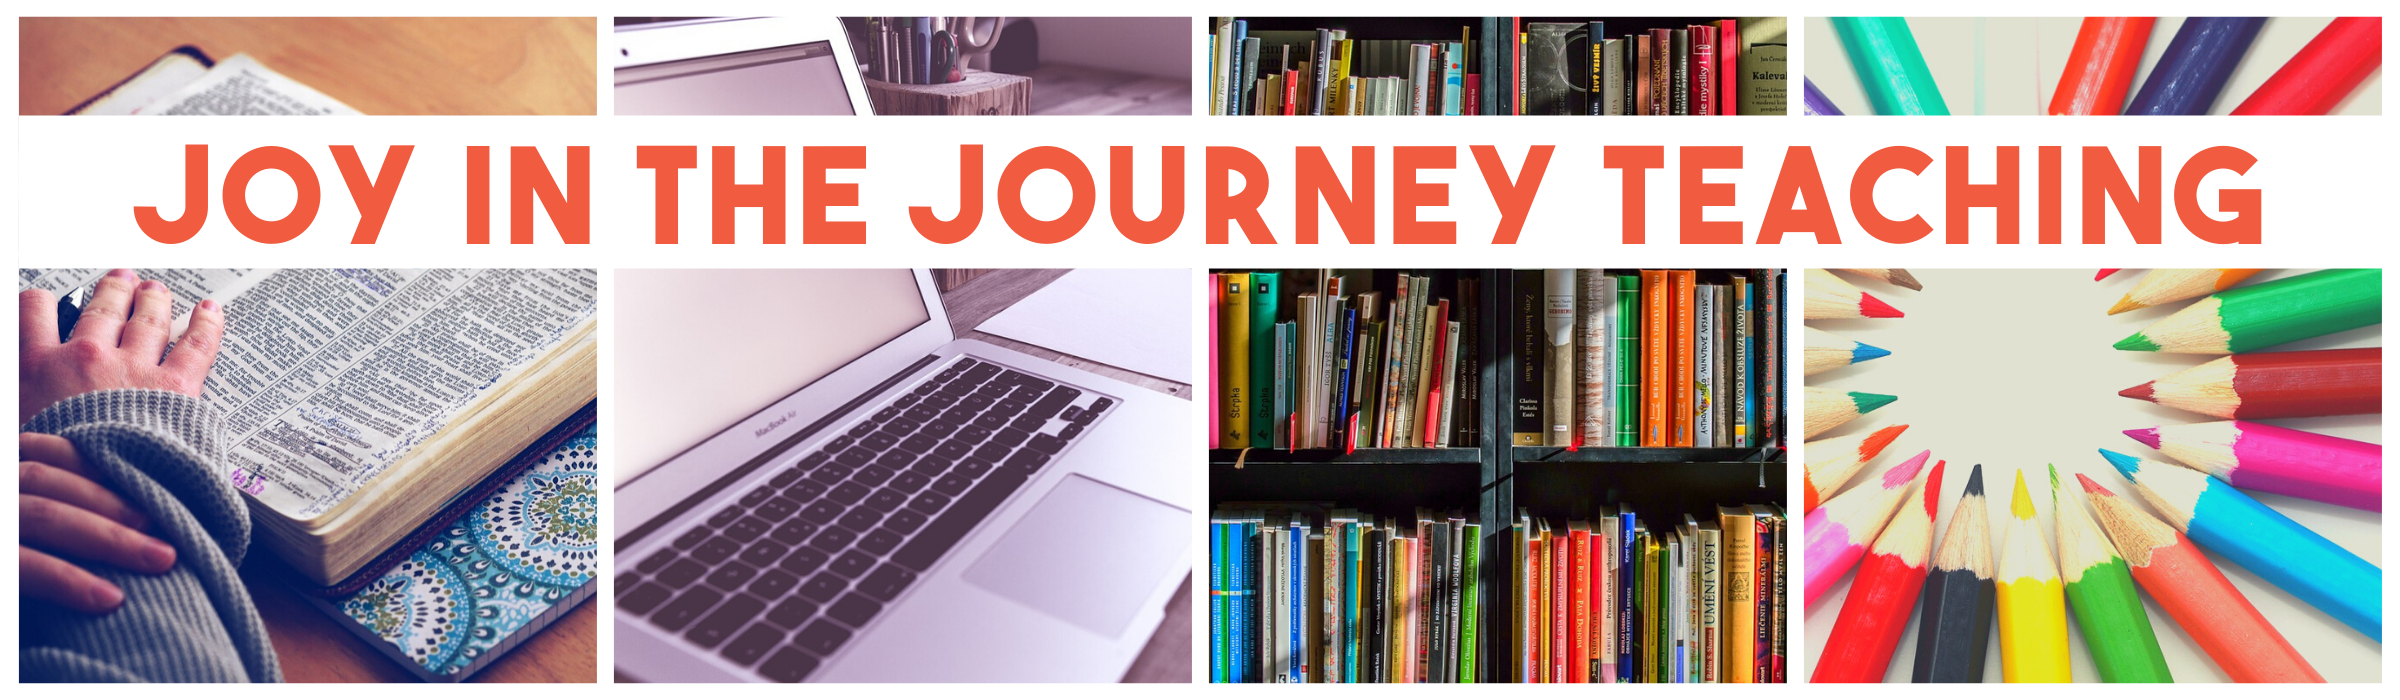 Joy in the Journey Teaching resources by Jessica Lawler